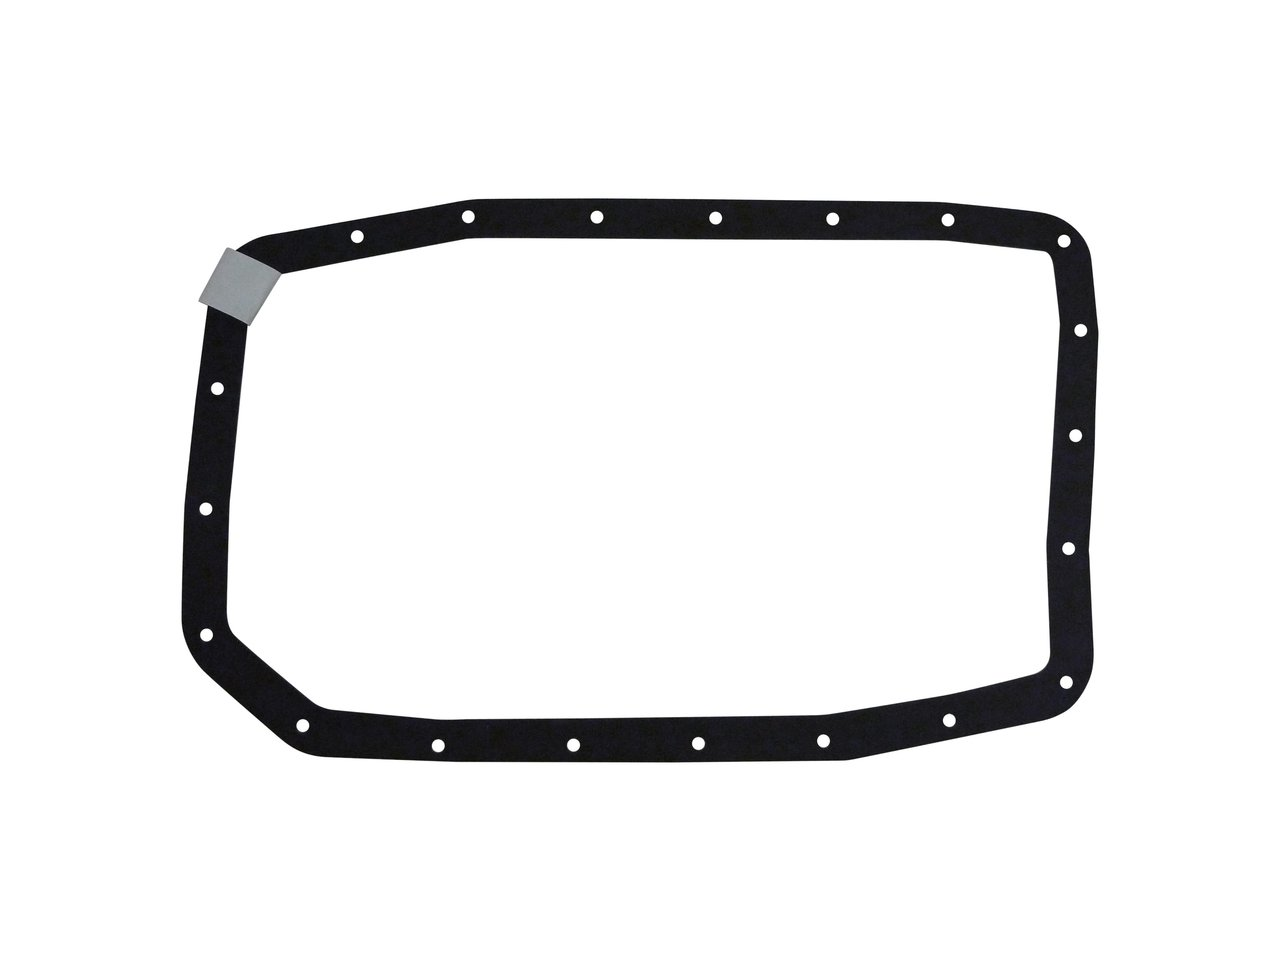 Auto Trans Sump Rubber Gasket For Discovery 3 4 Range